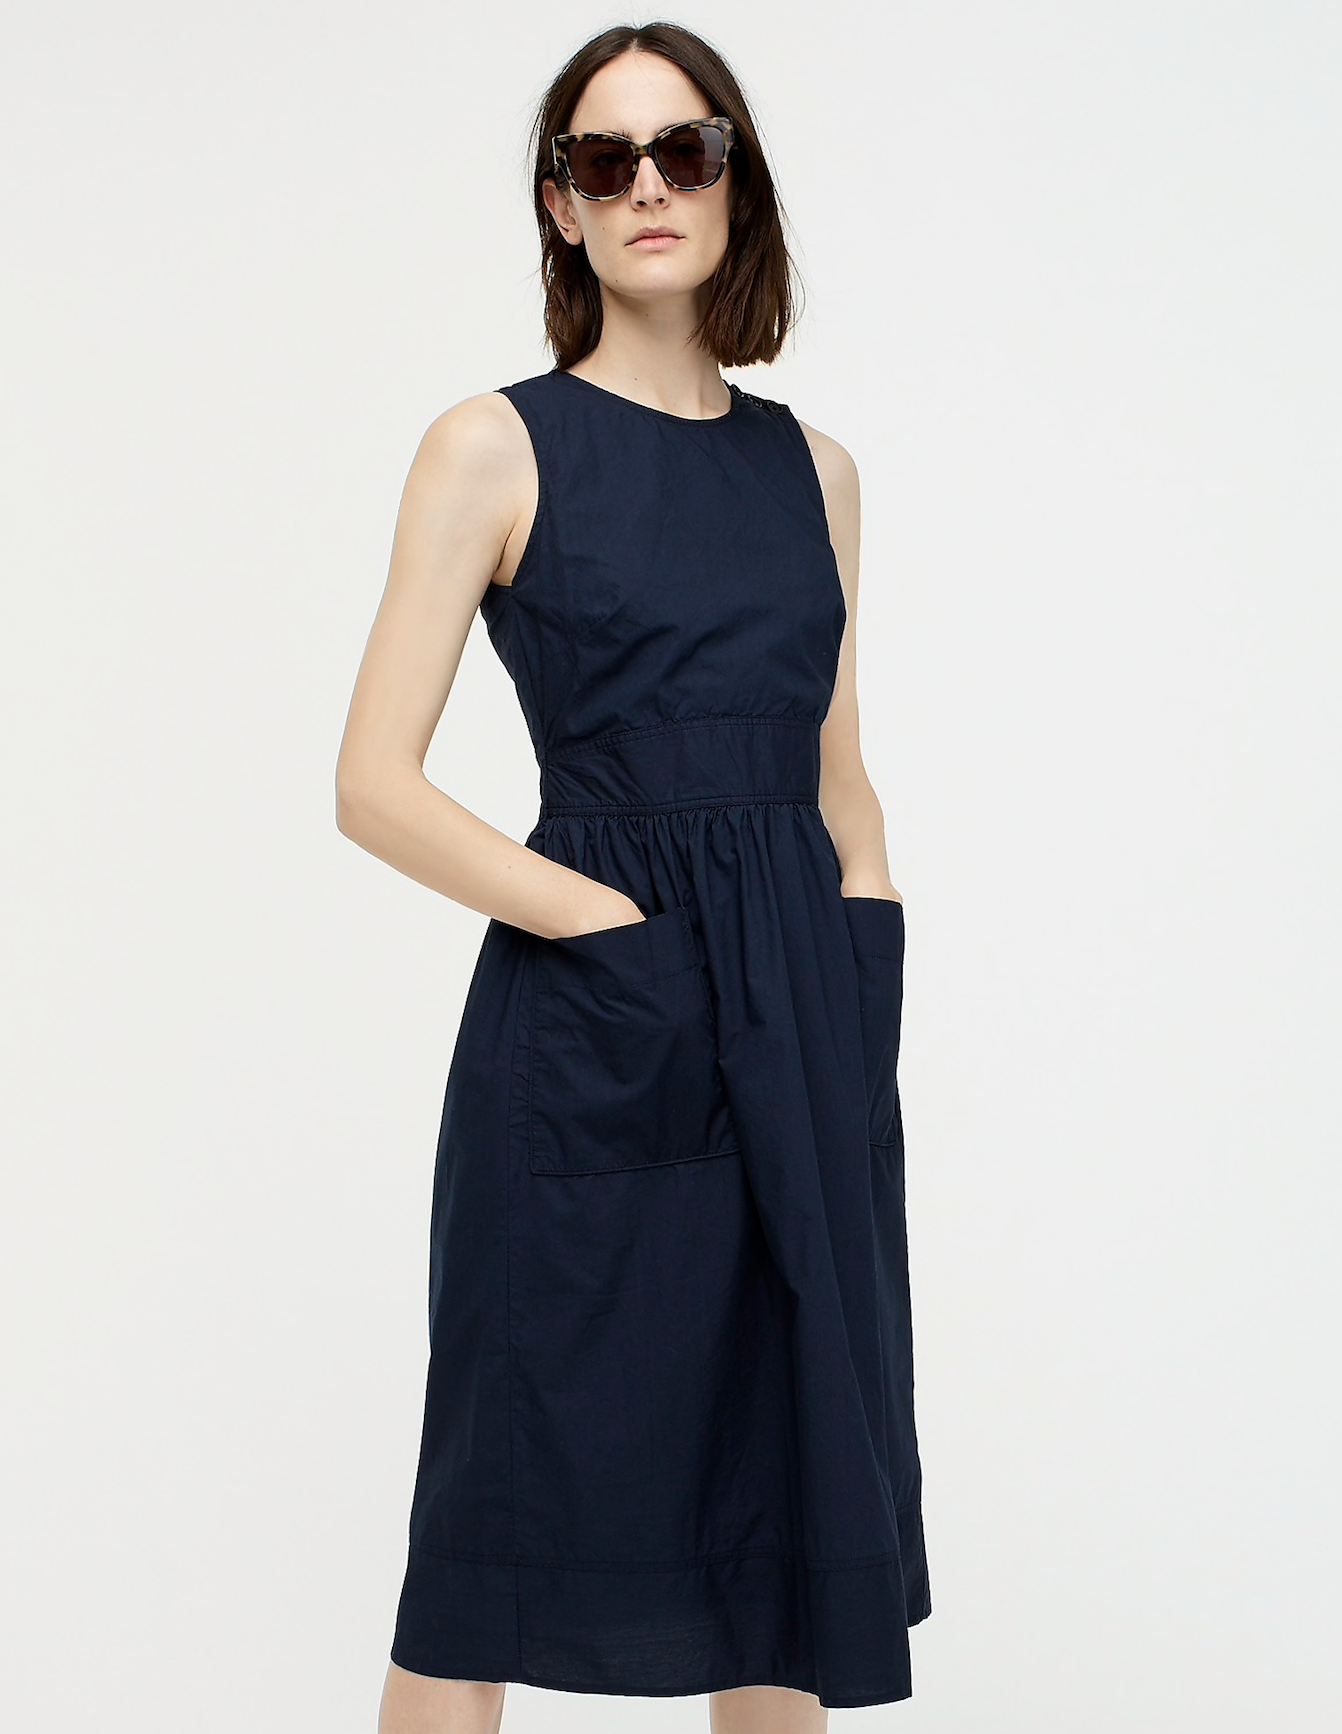 High Neck Dress with Pockets